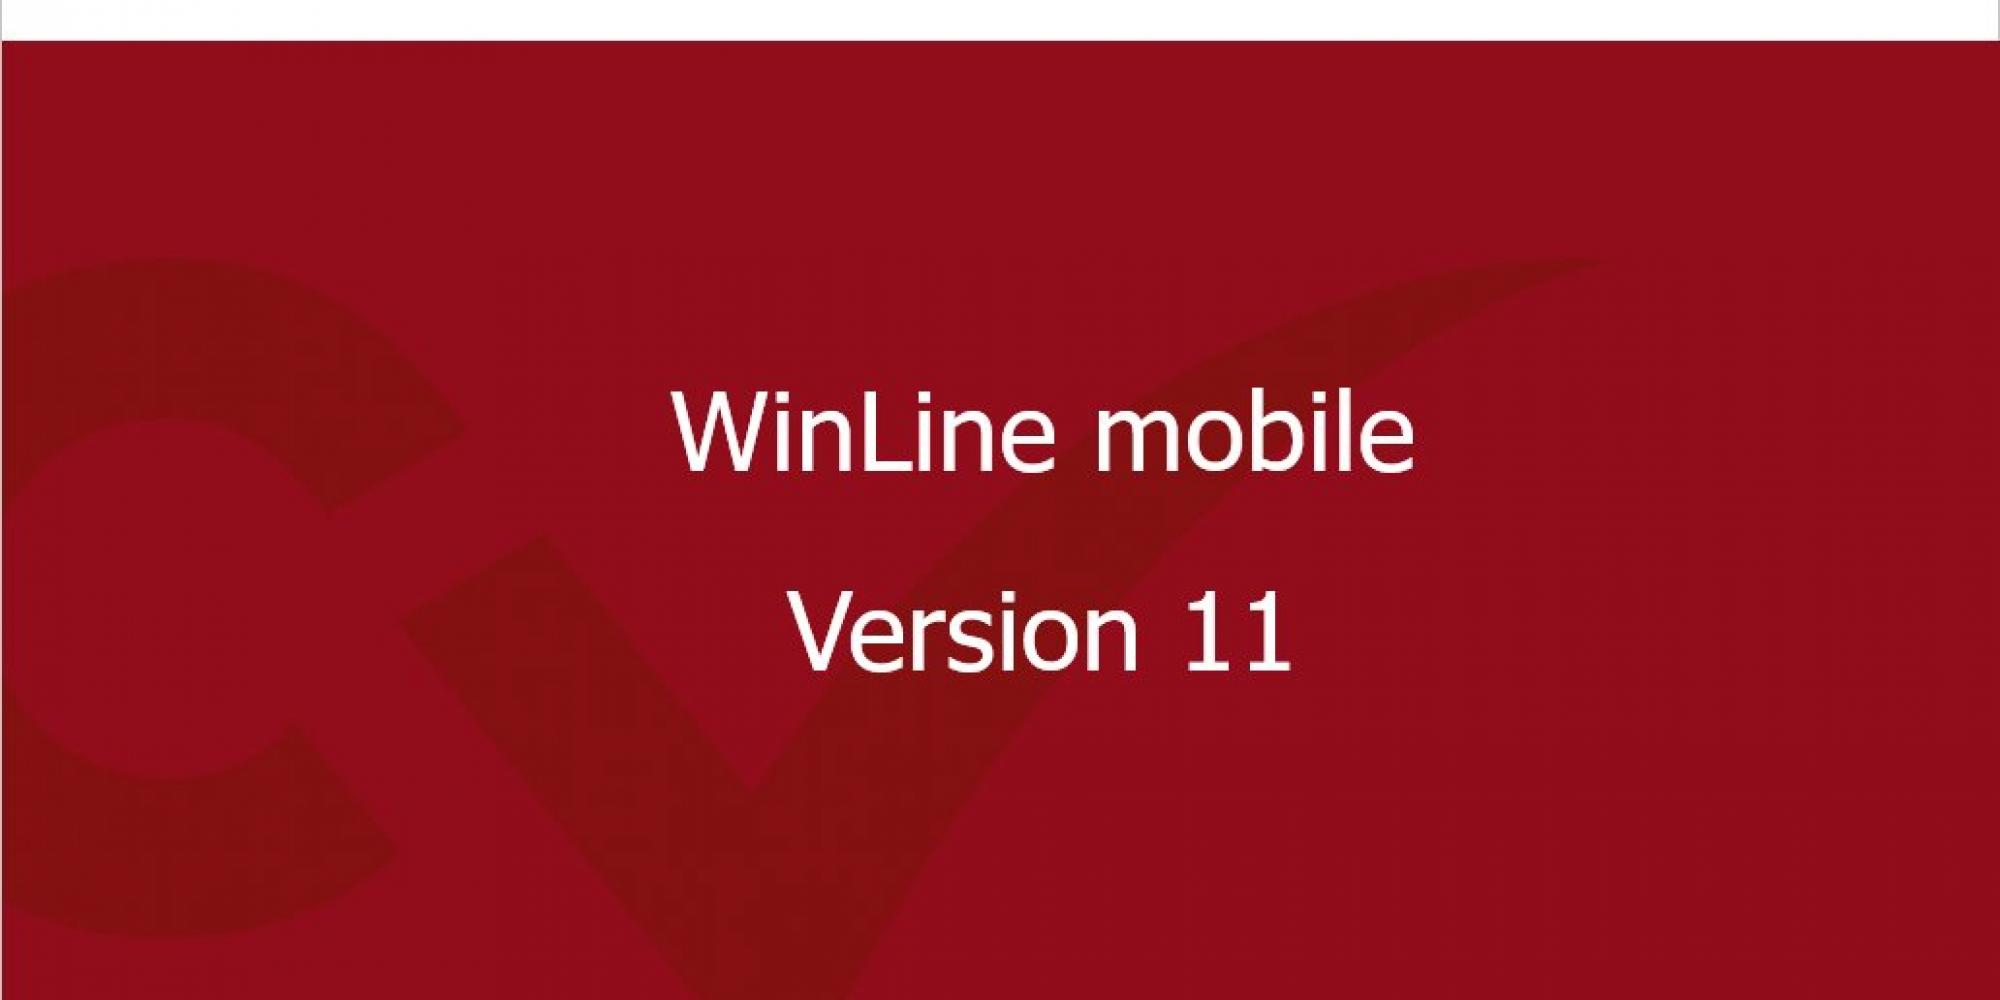 WinLine mobile Version 11 Highlights